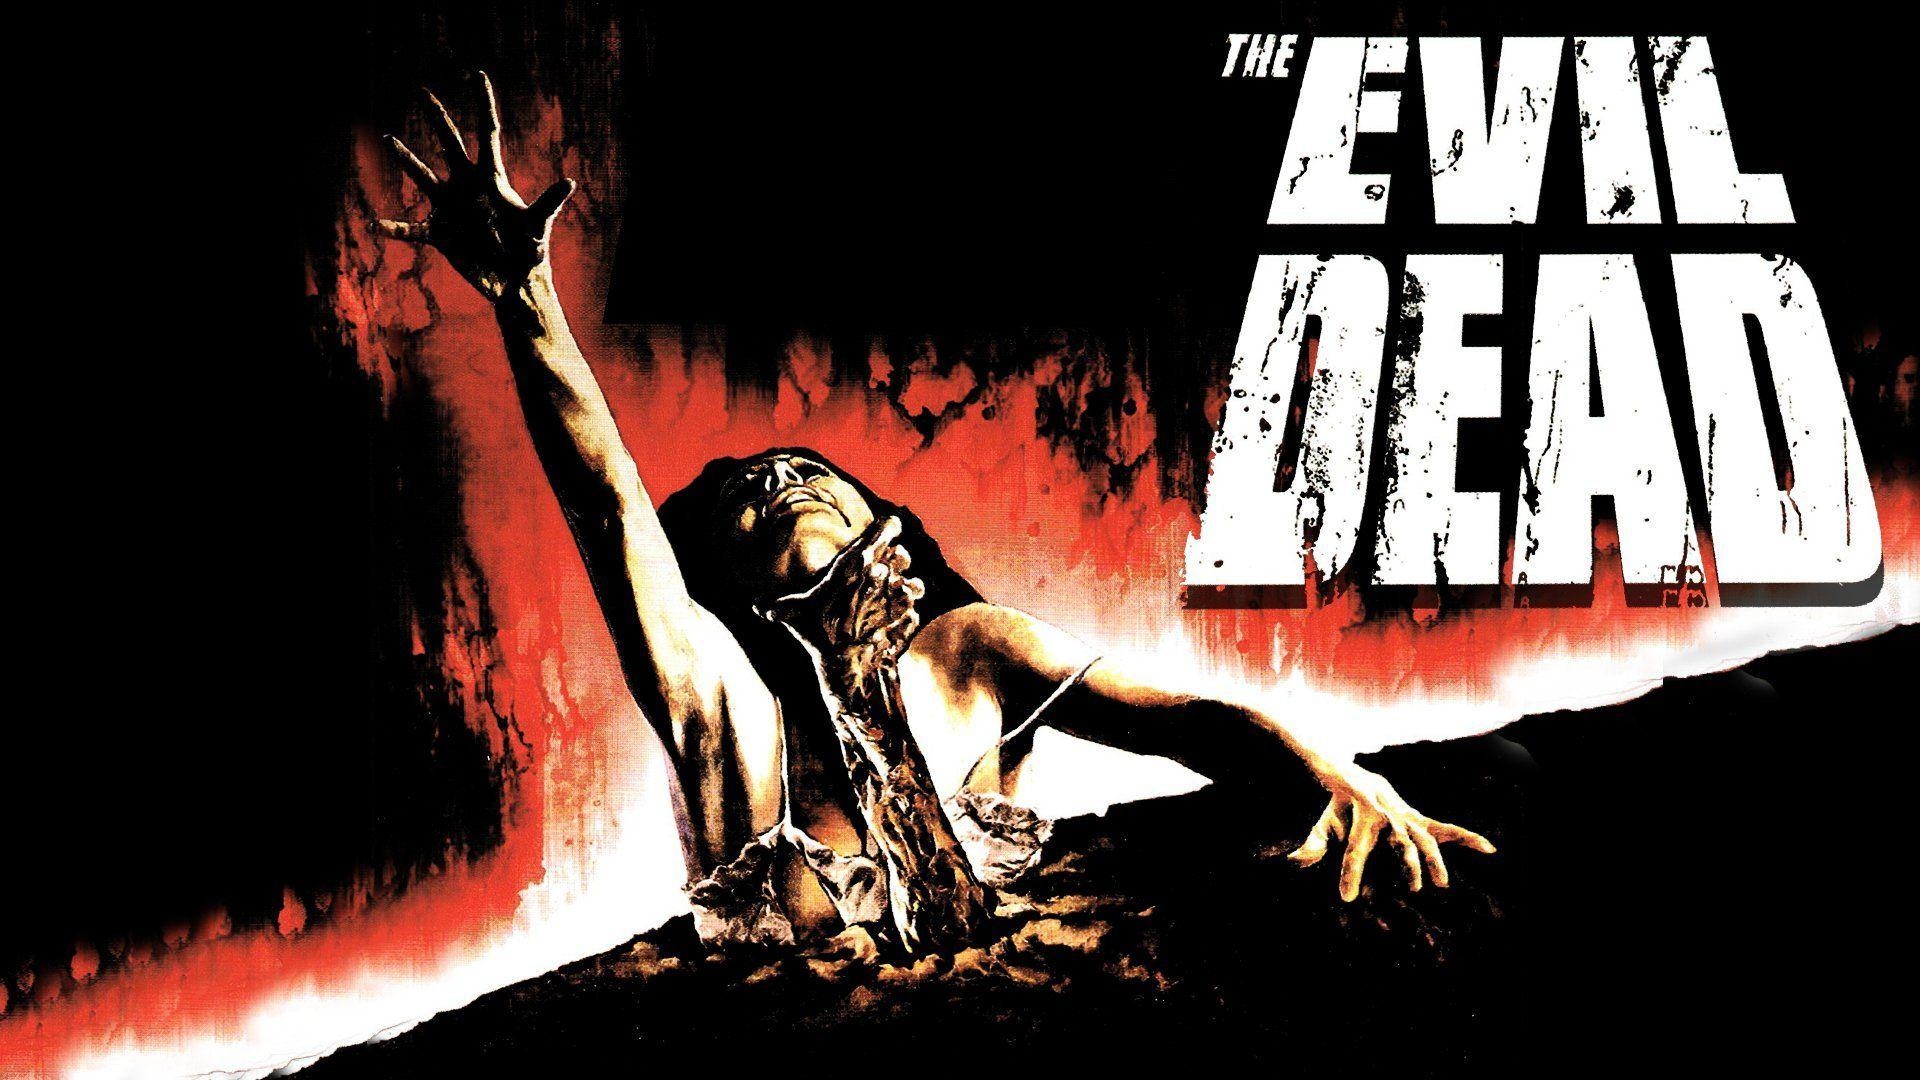 Evil Dead 2016 Wallpapers - Wallpaper Cave